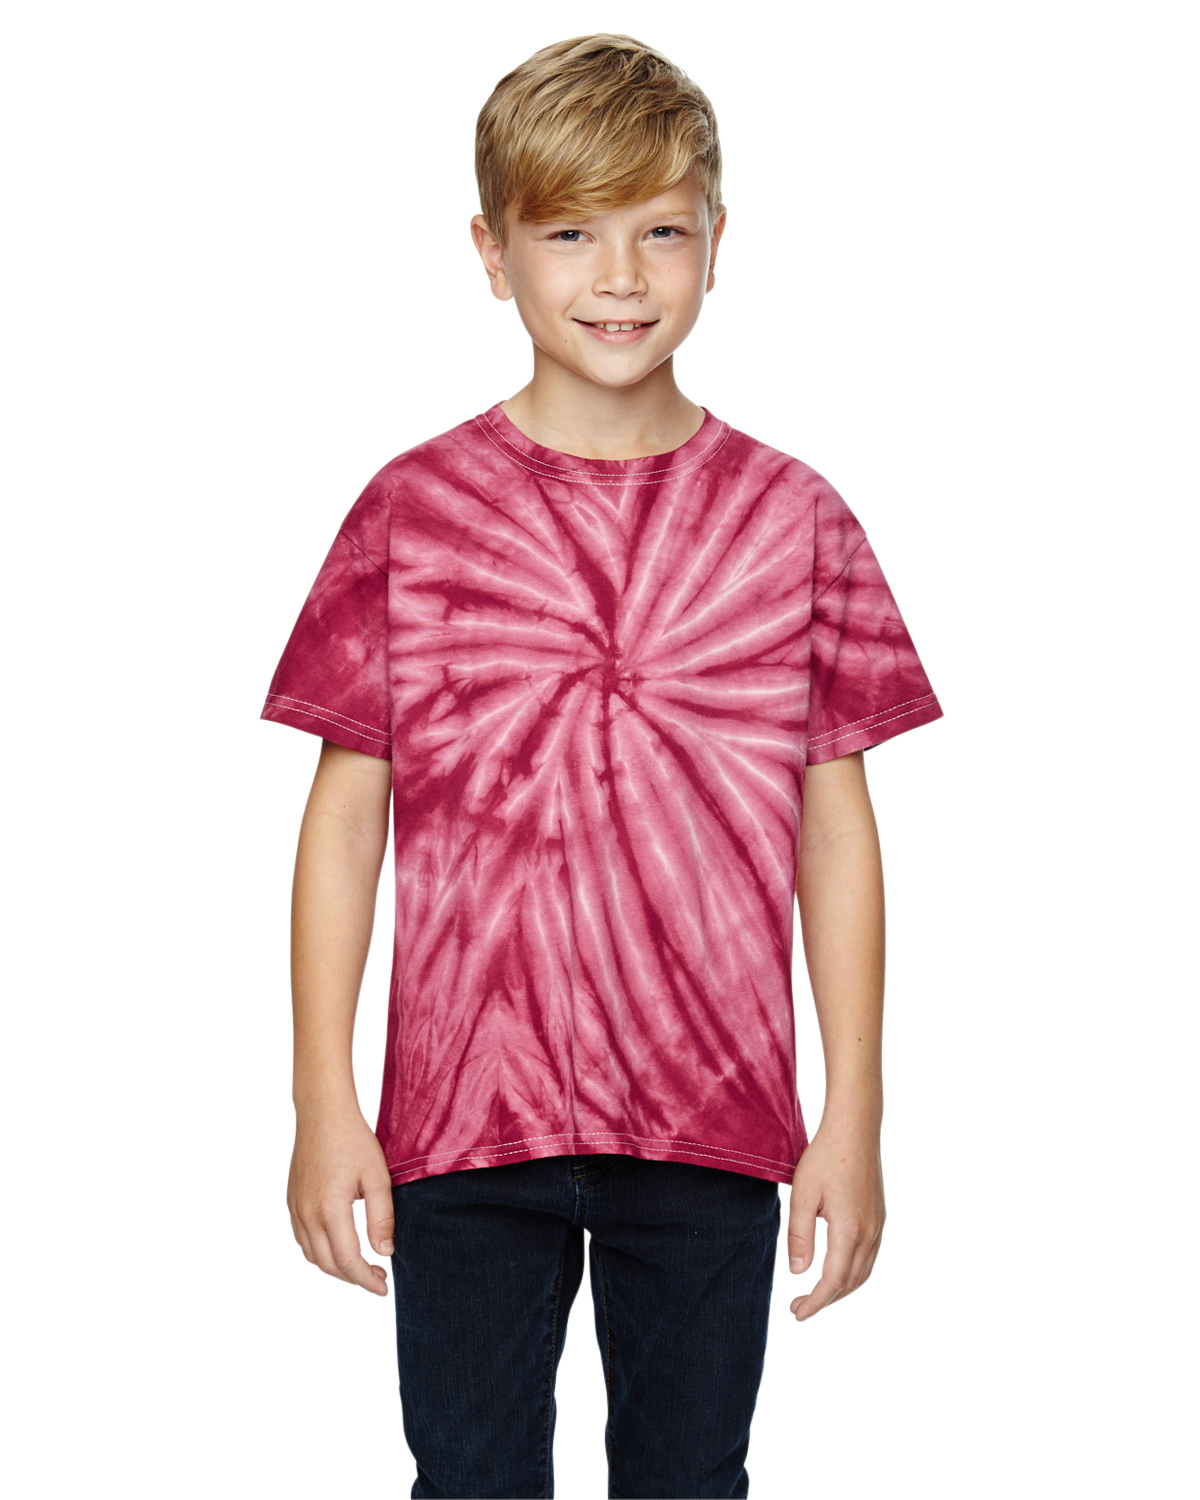 Dyenomite Youth Team Tonal Cyclone Tie-Dyed T-Shirt